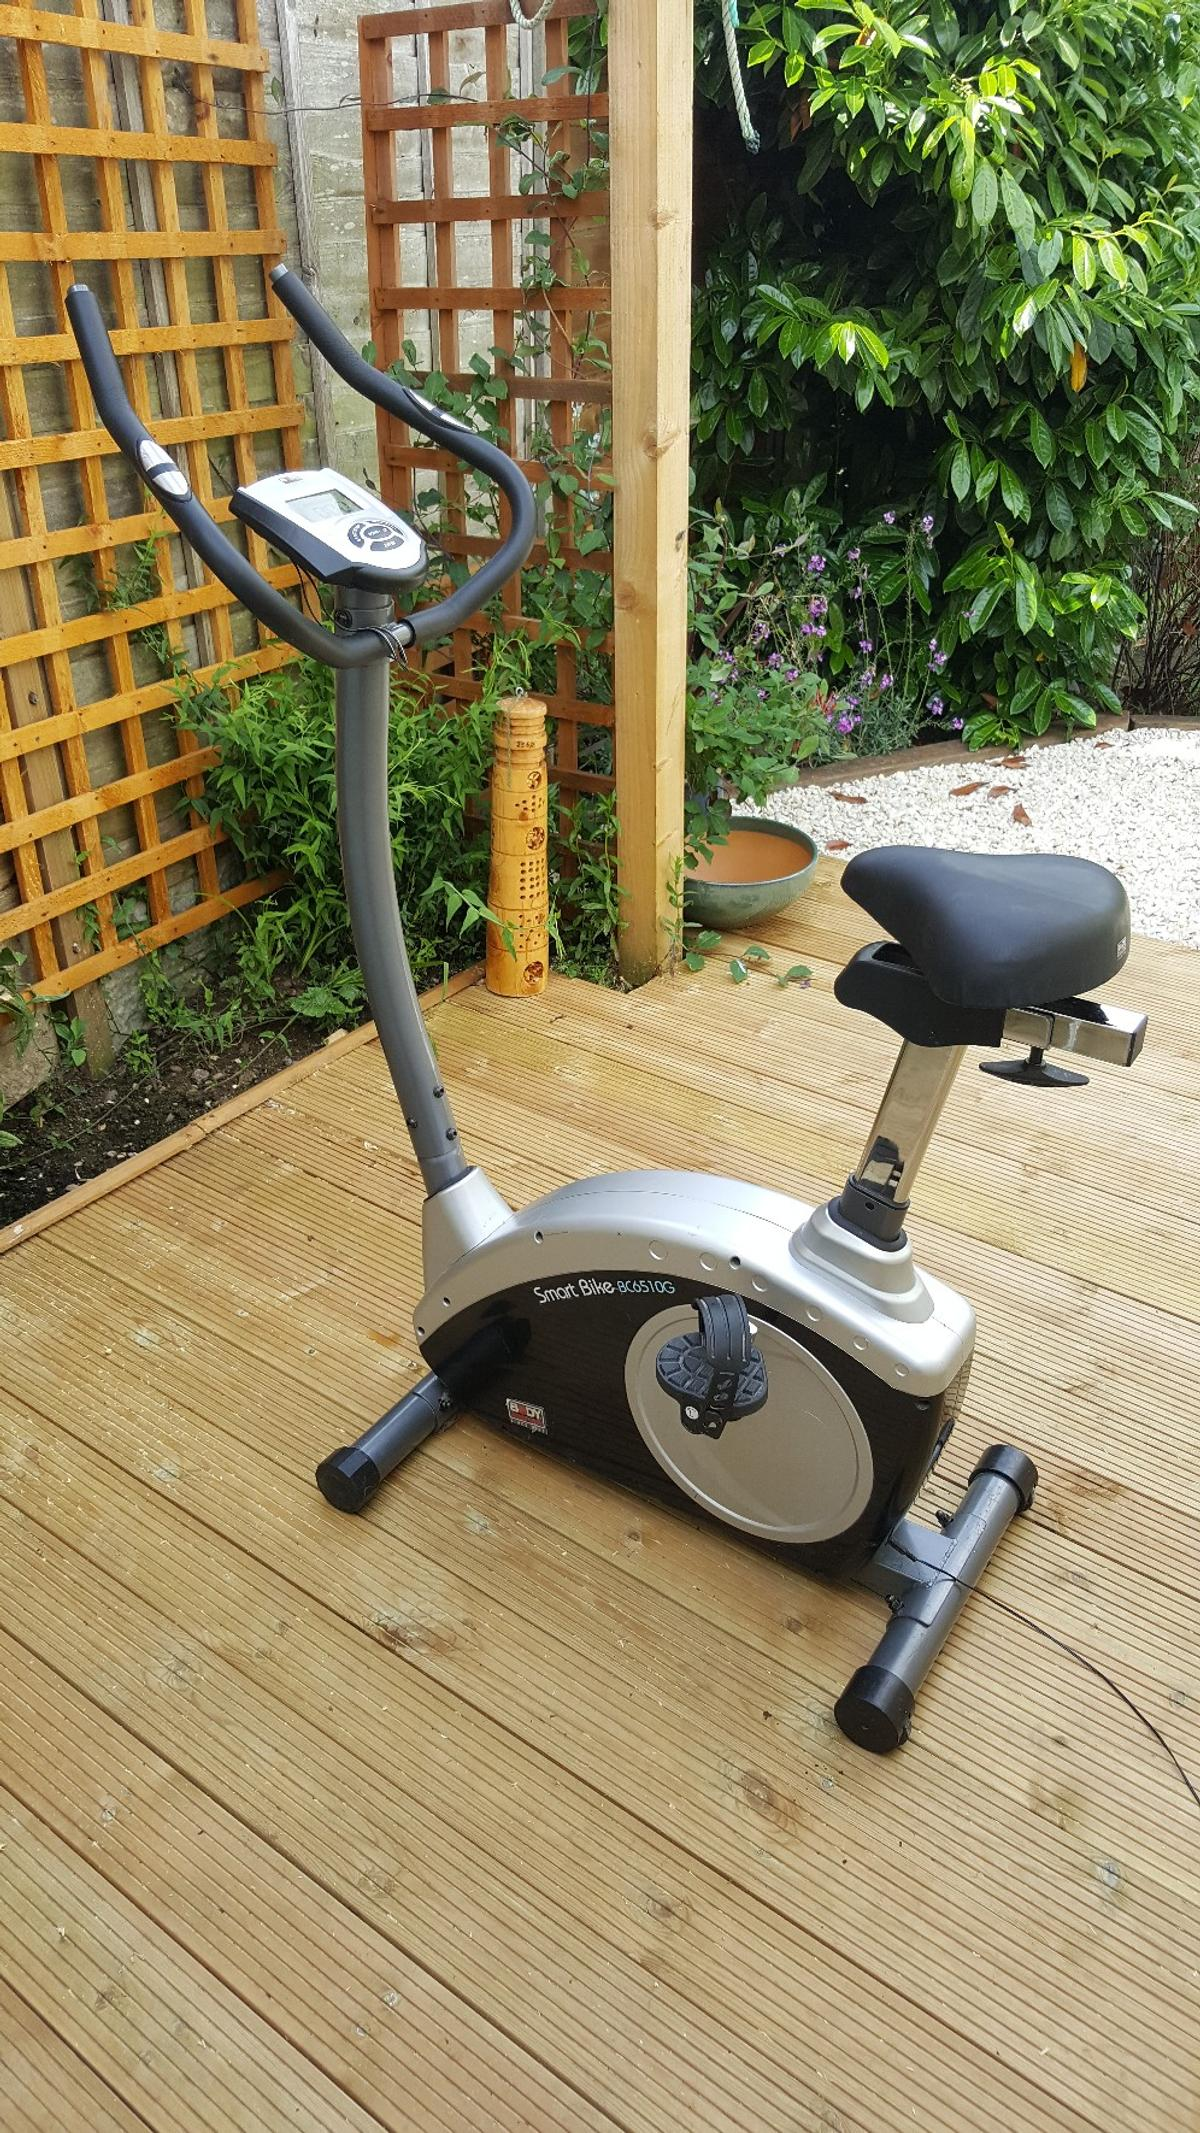 Excellent Exercise Bike (Smart Bike) in B91 Solihull for £60 00 for